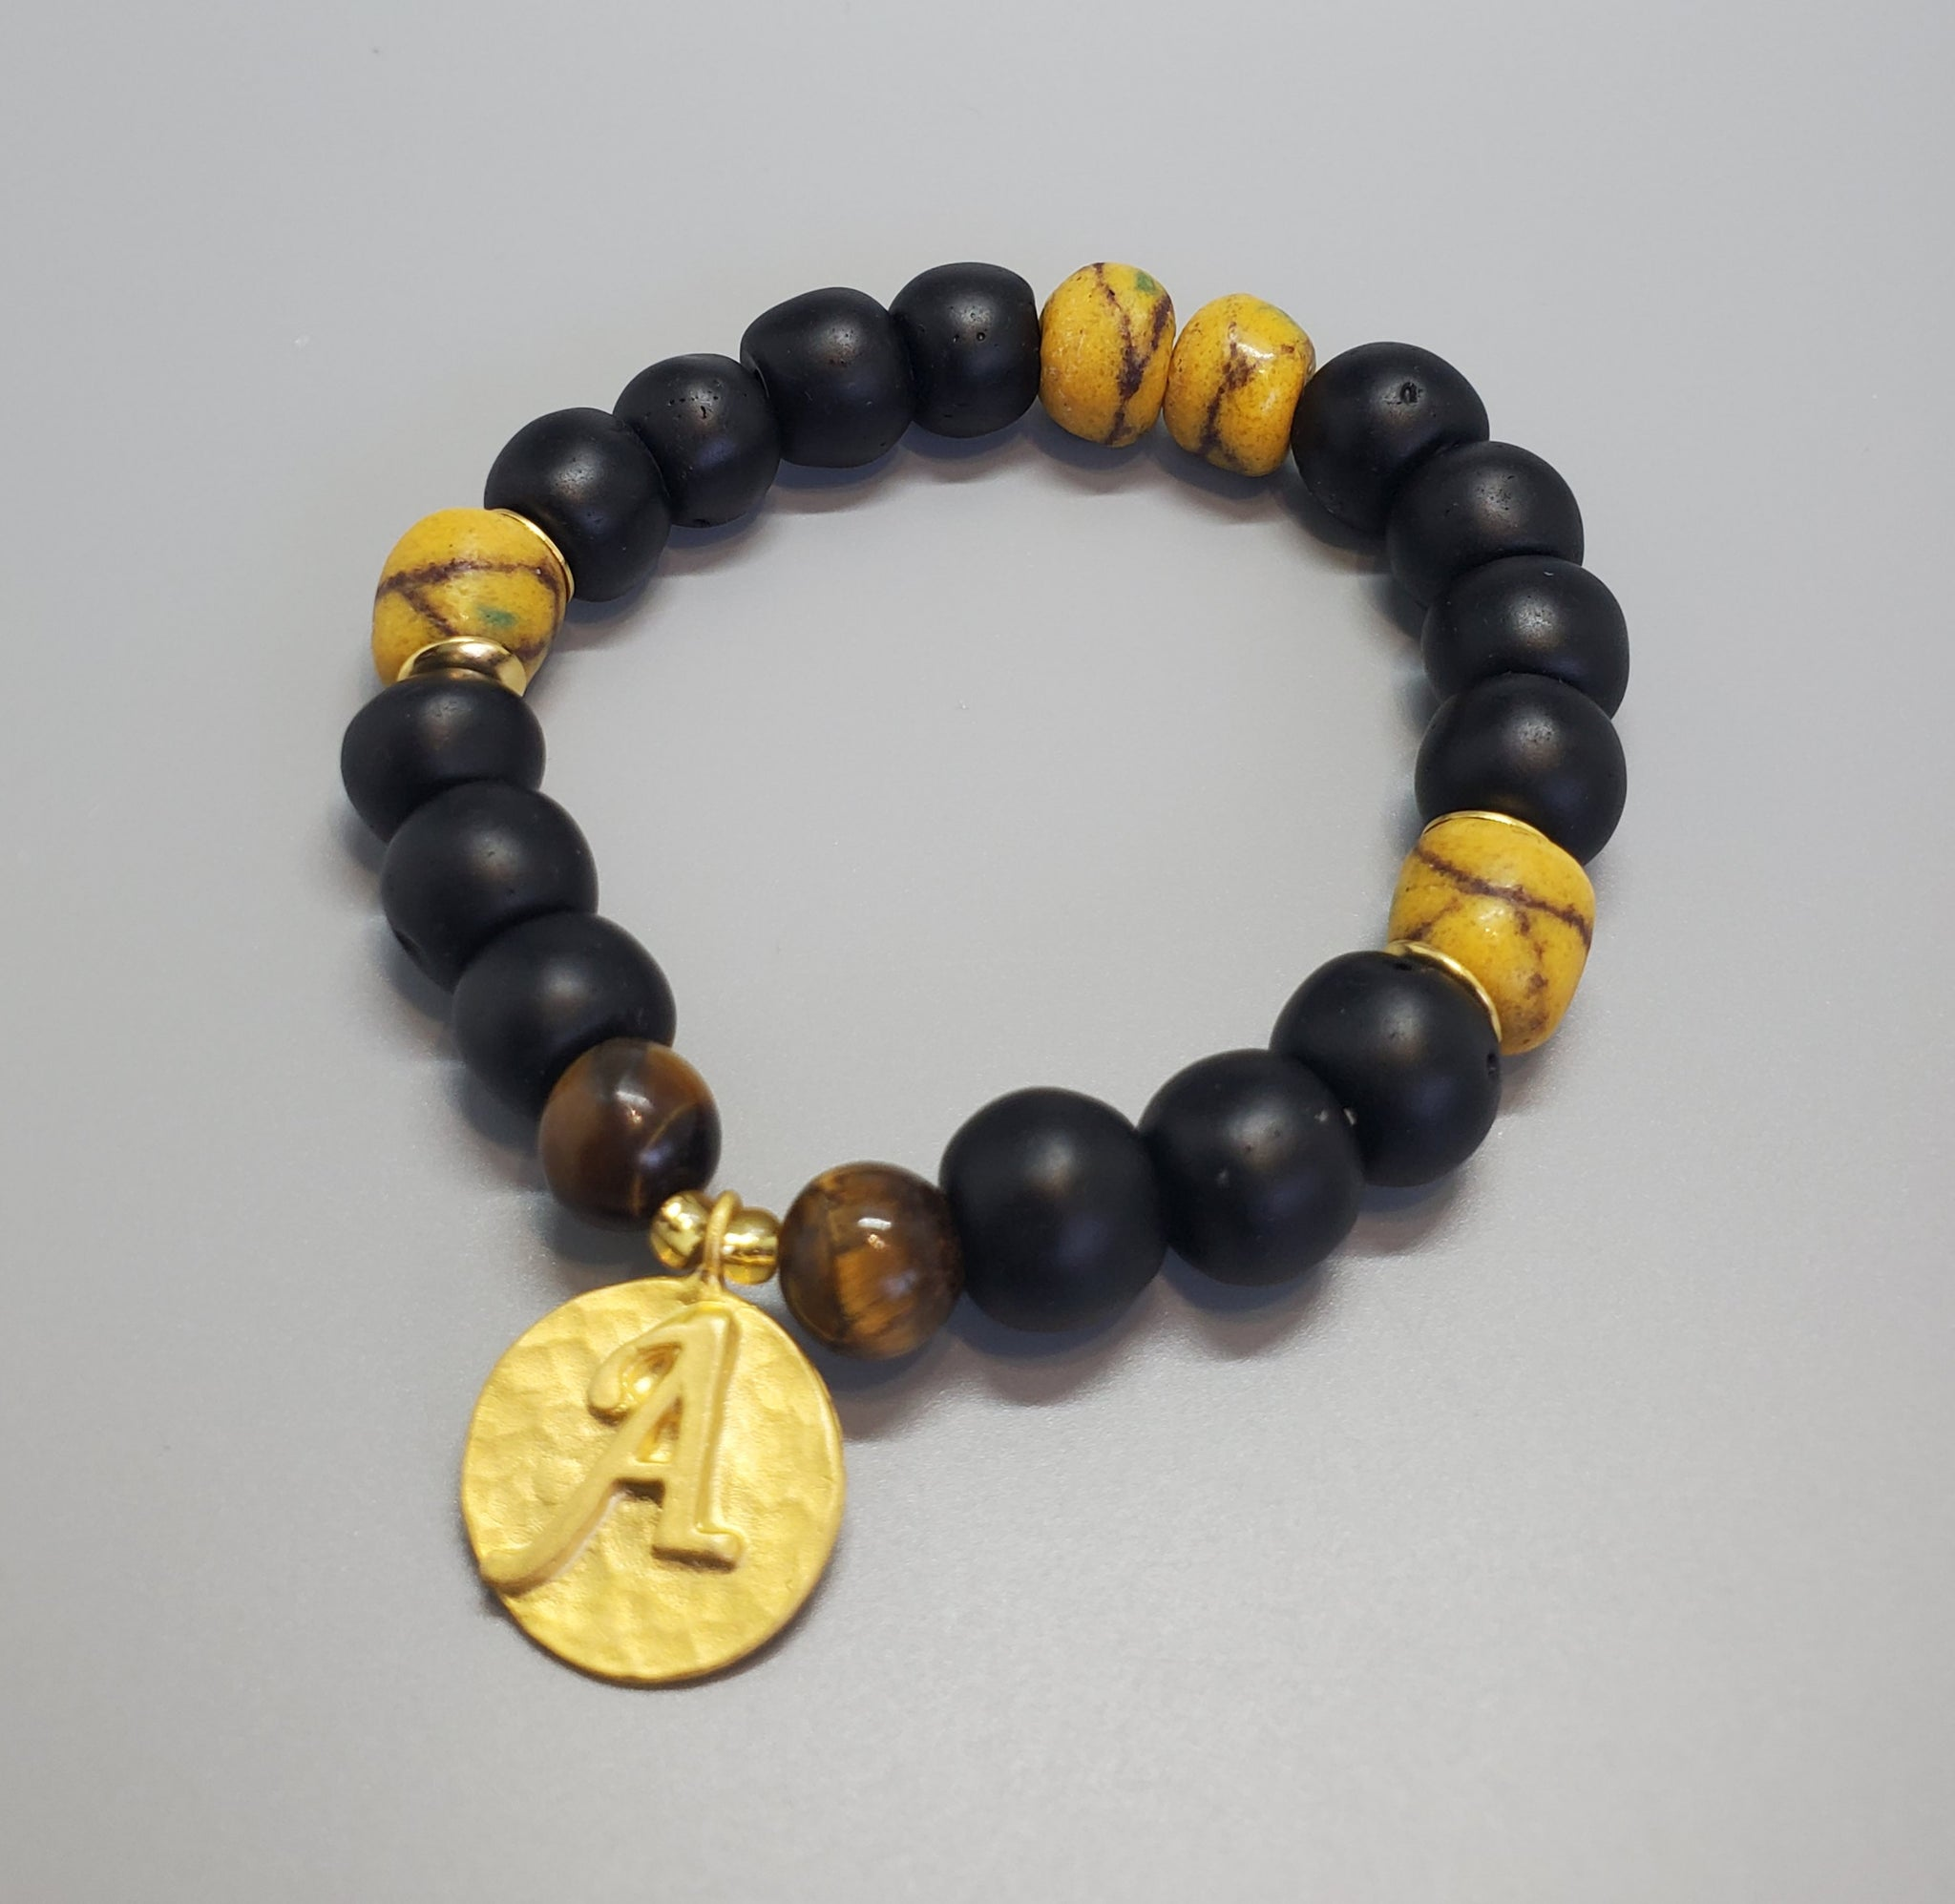 "Black, Must. Krobo Beads, Tiger Eye, 22K Gold Plated Plated Brass ""A"" Charm, Brass, Unisex Stretch Bracelet"